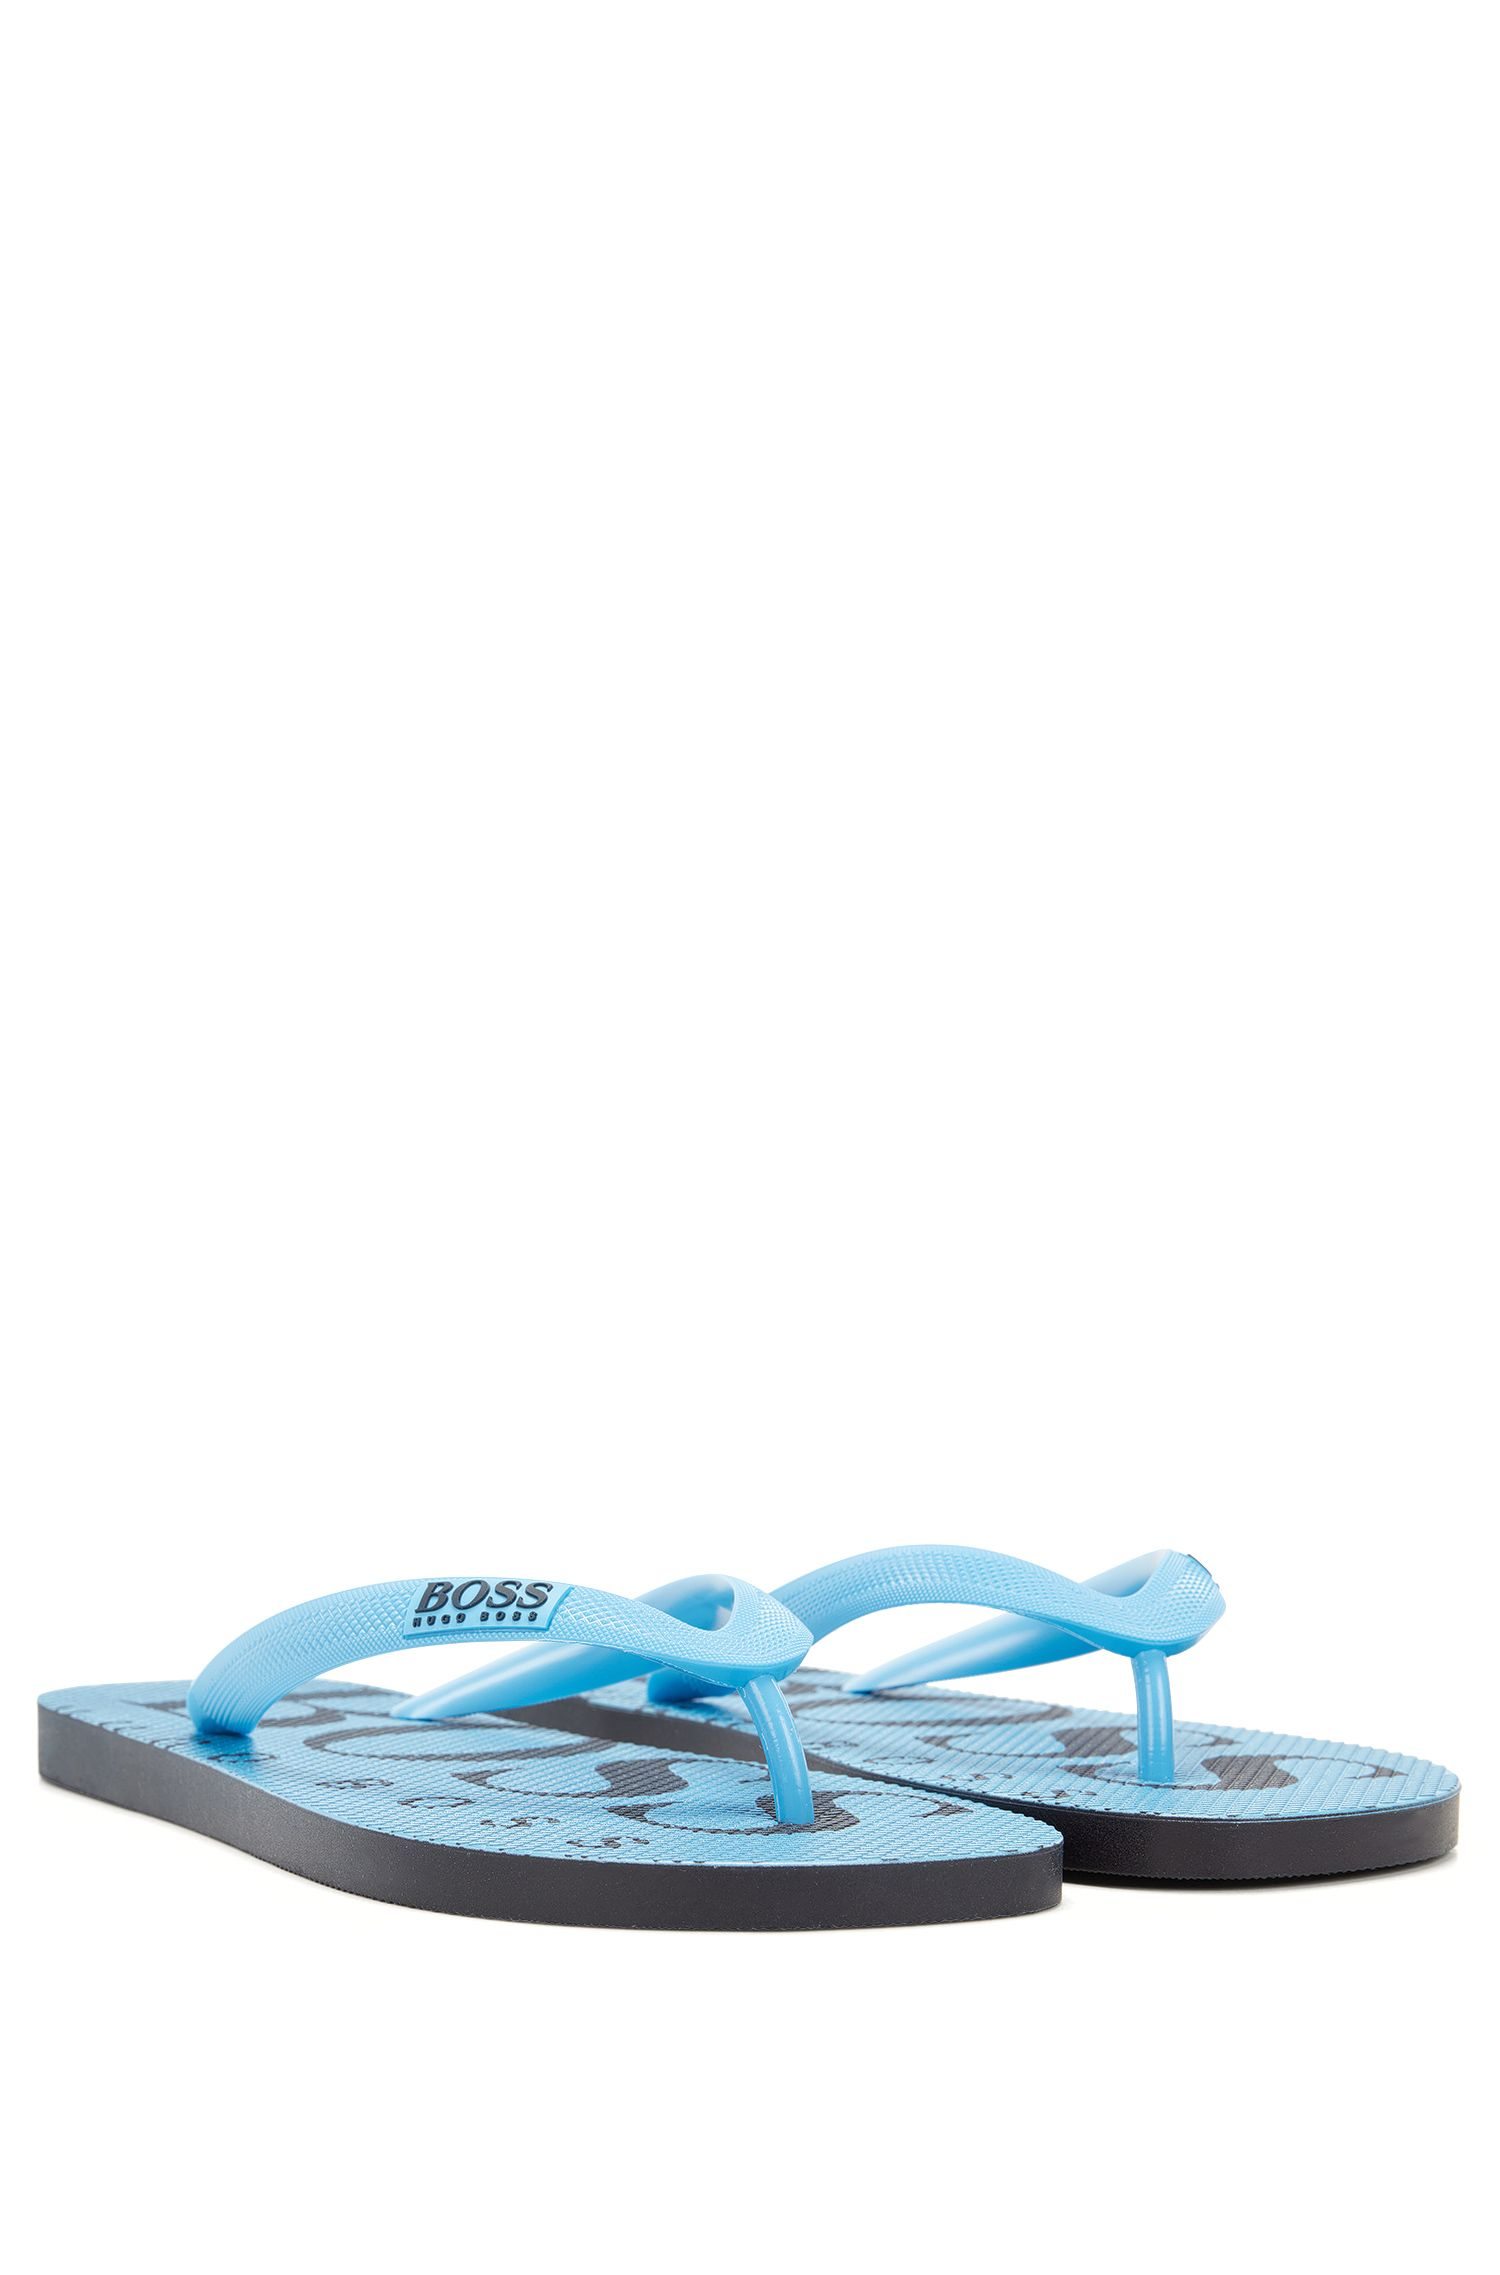 Rubber flip-flops with contrasting logo detail